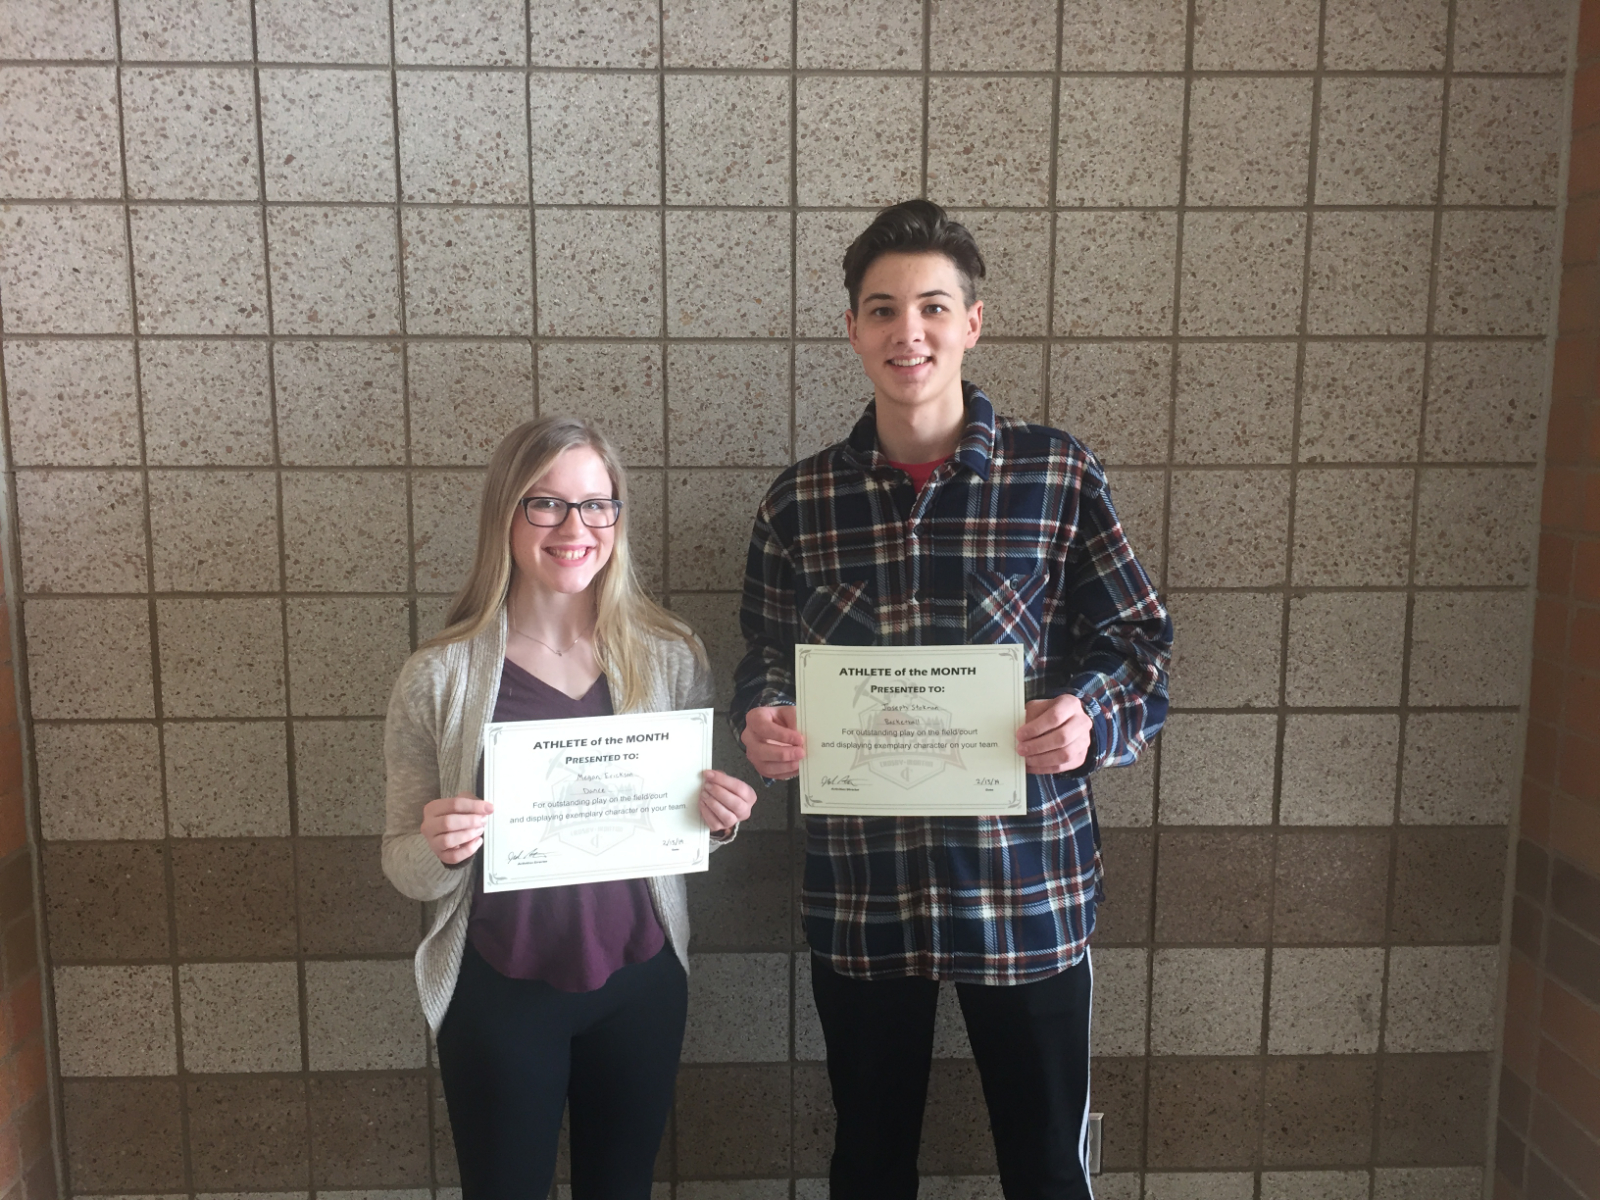 Erickson and Stokman named Student-Athletes of the Month